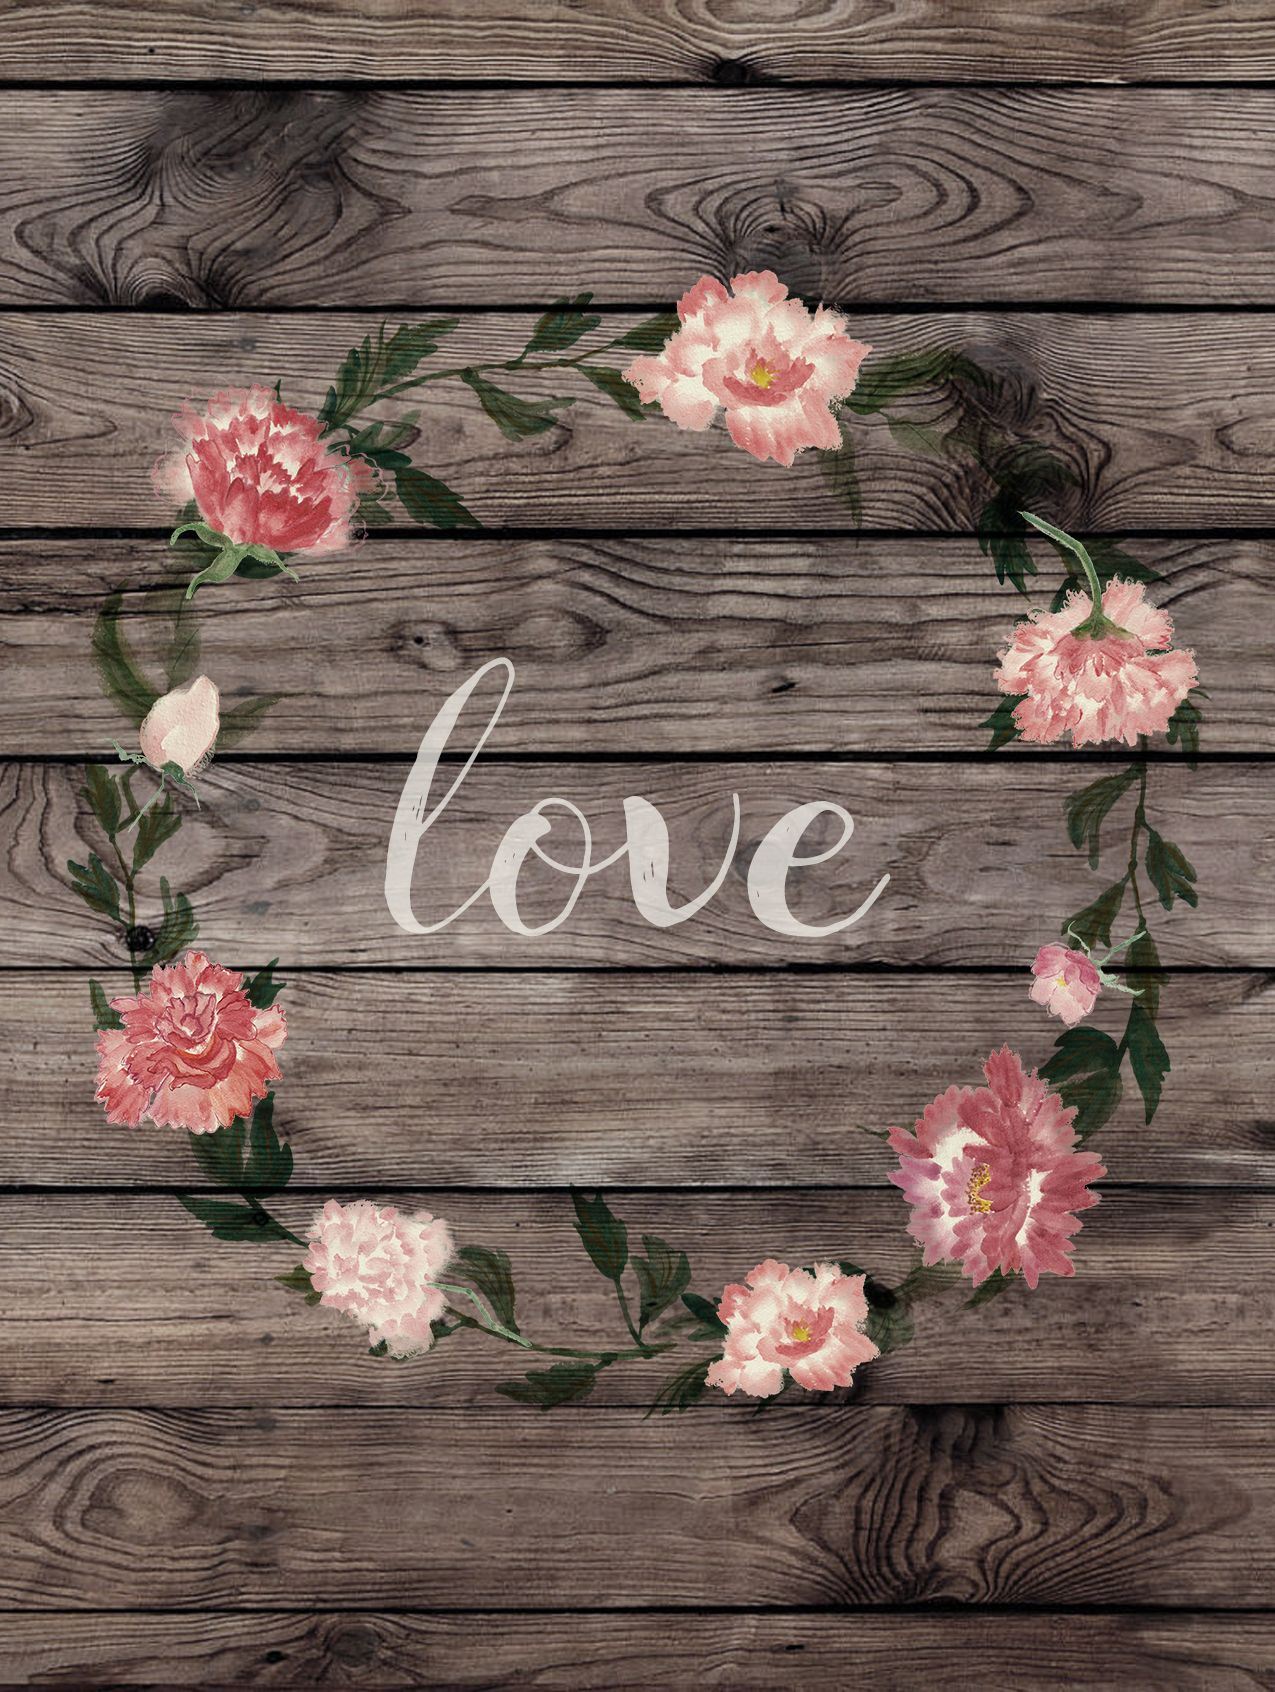 One of our exclusive greeting cards love wood grain flower wreath one of our exclusive greeting cards love wood grain flower wreath greeting card bohemian m4hsunfo